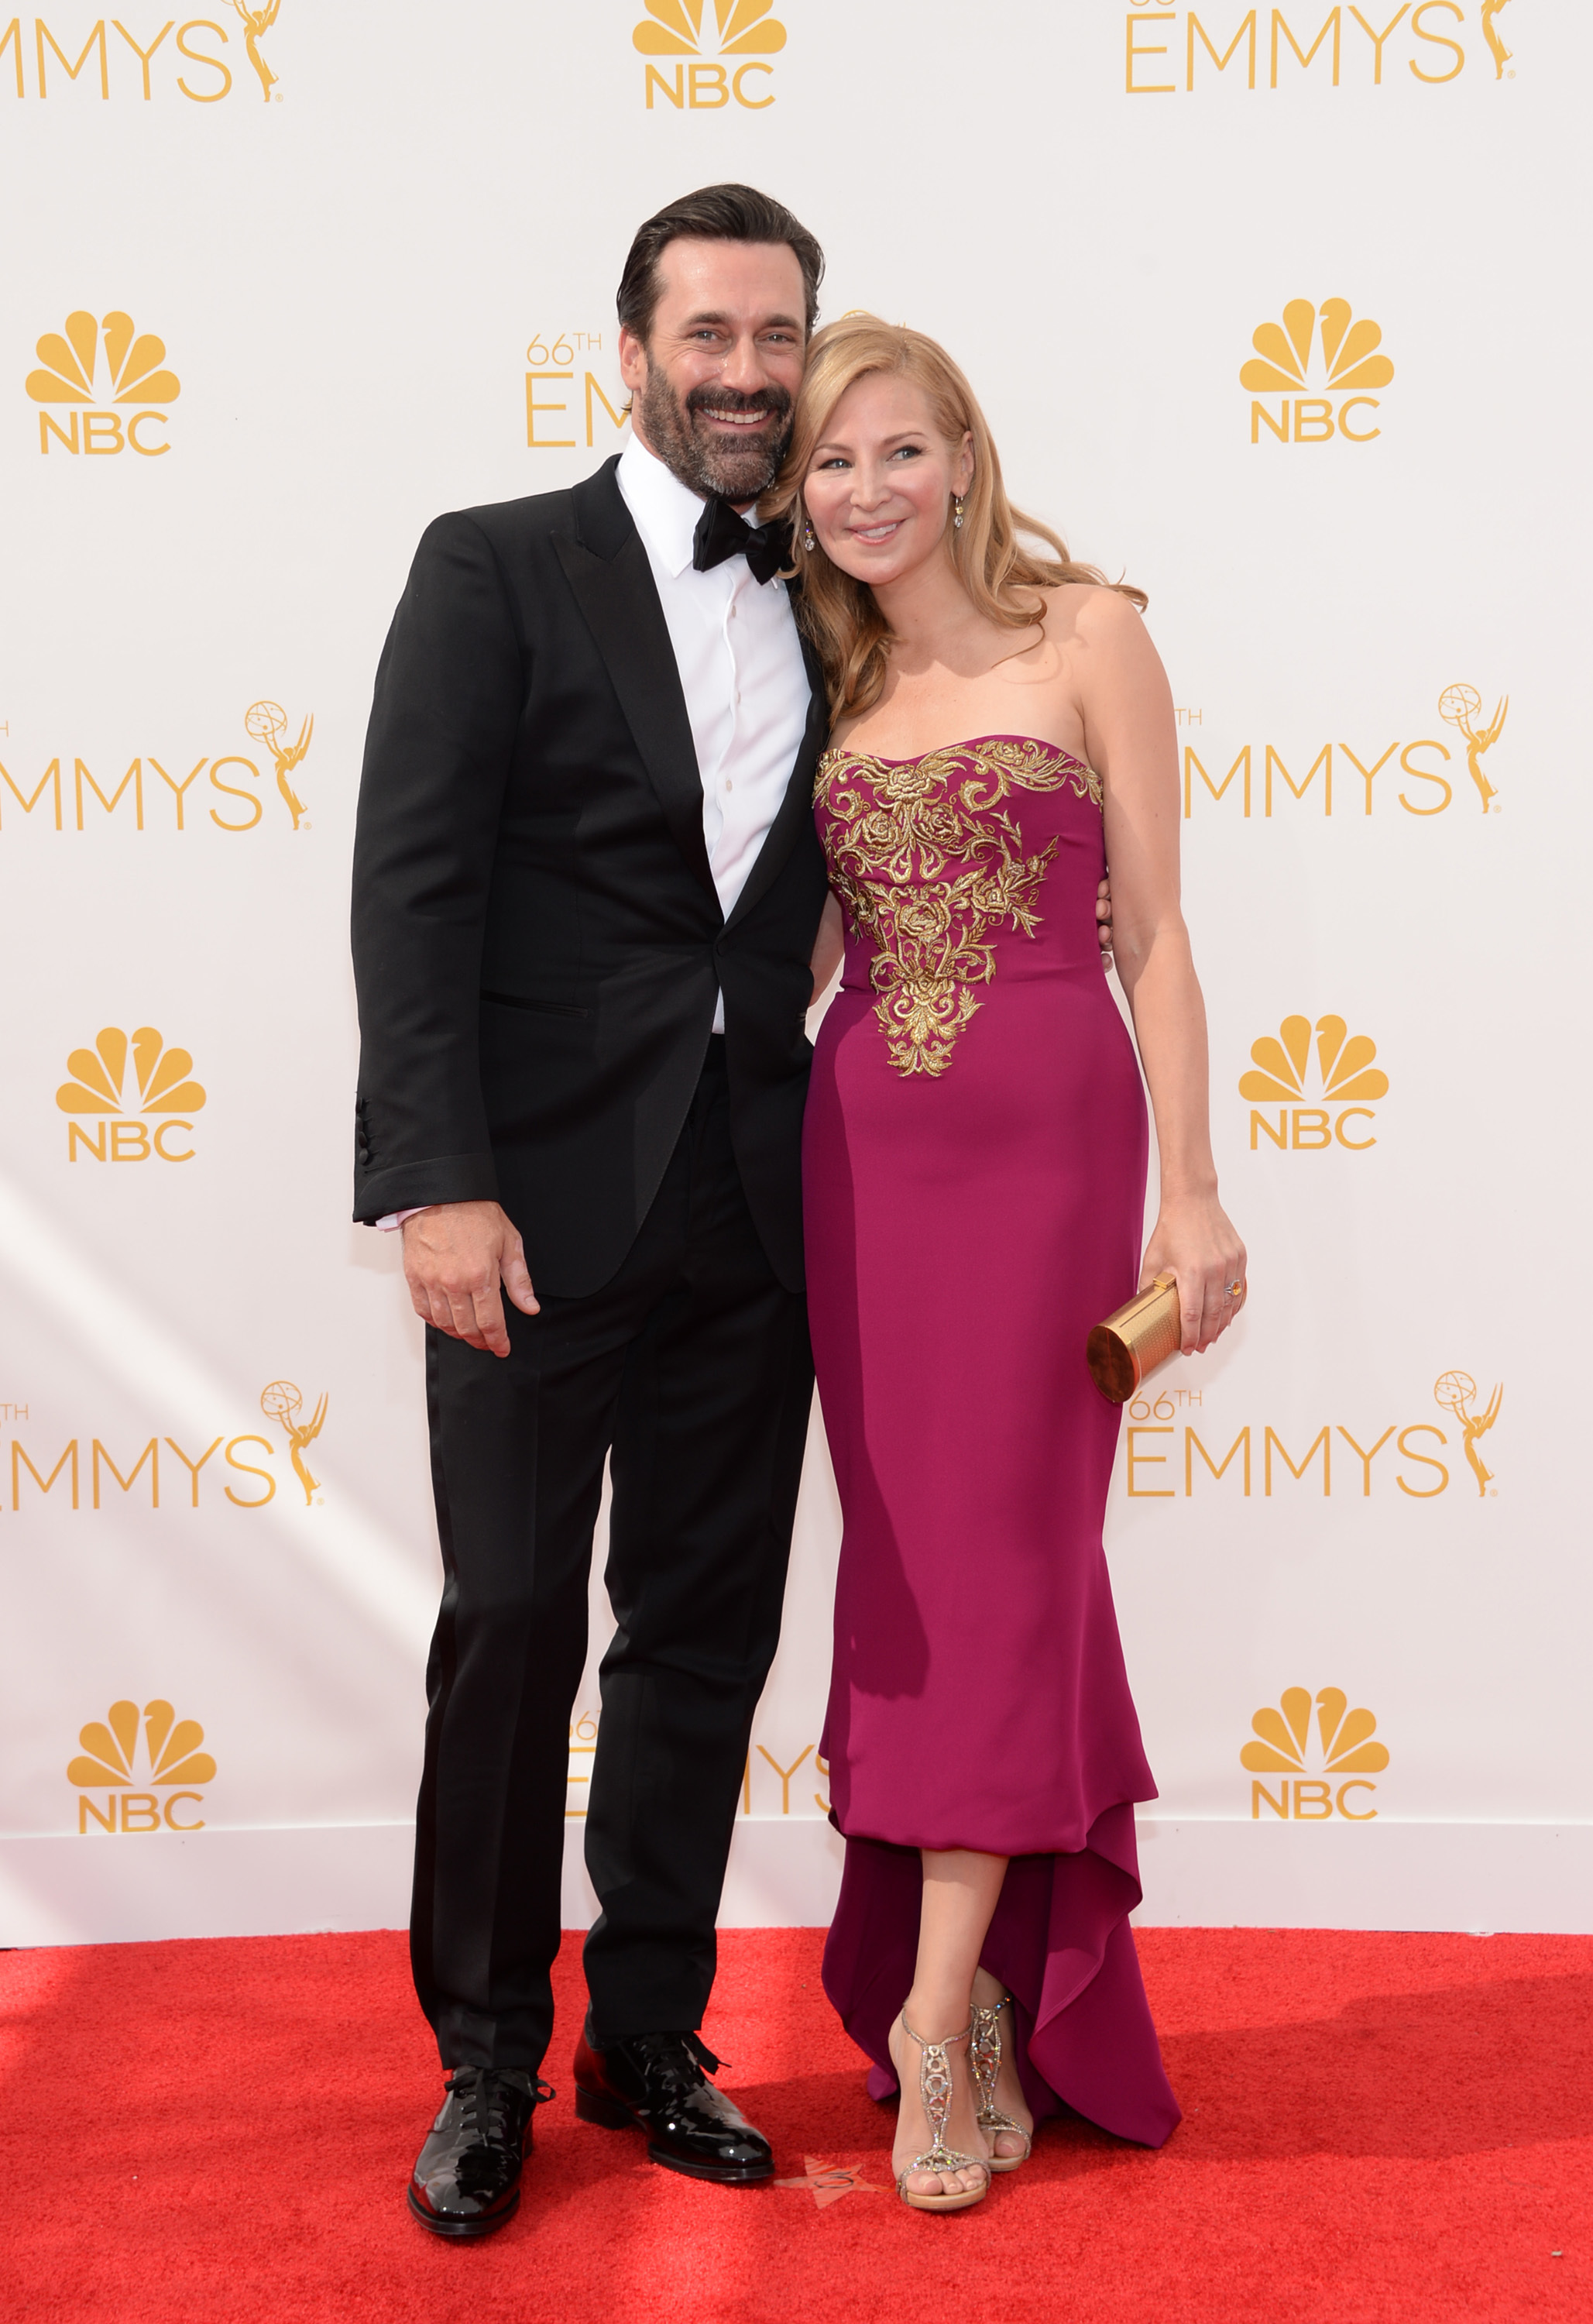 Jon Hamm and Jennifer Westfeldt spark reunion rumors